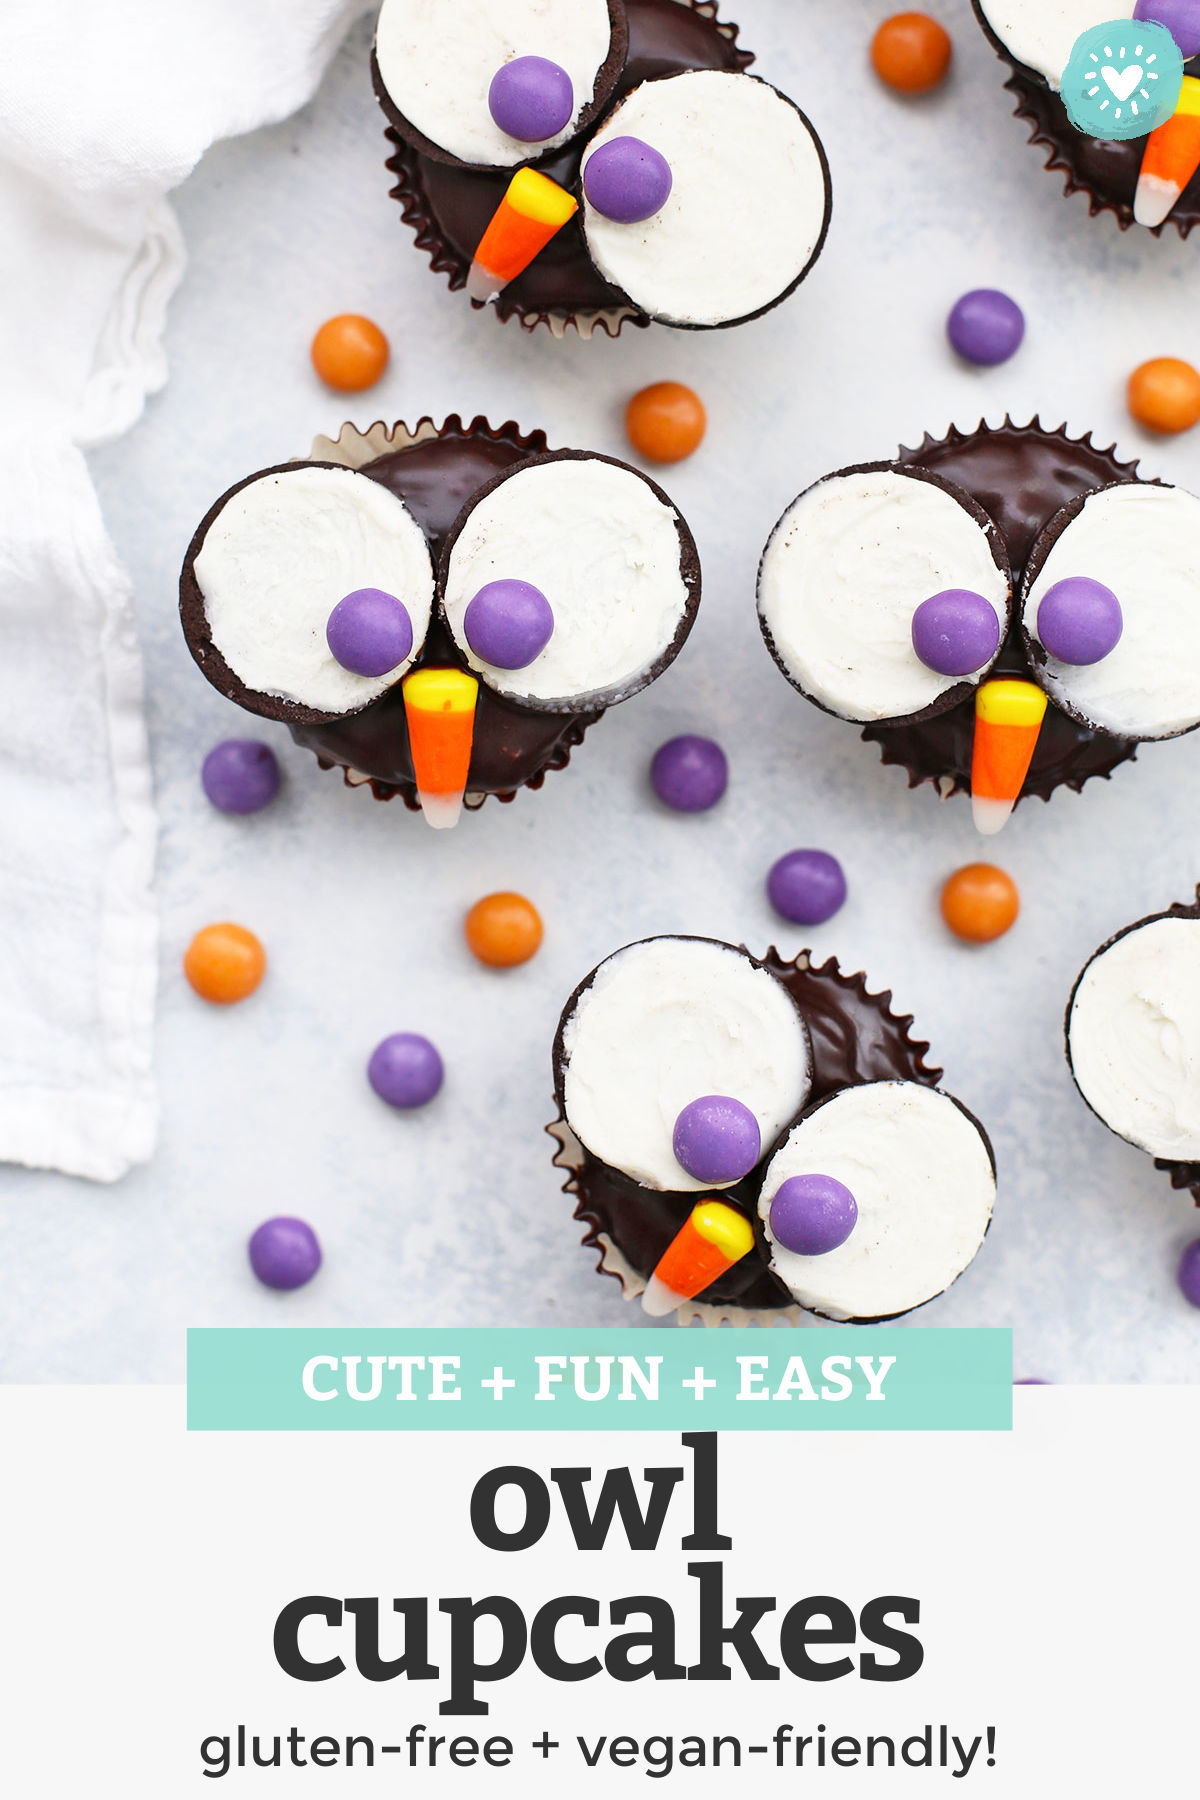 Owl Cupcakes - These adorable little owl cupcakes are perfect for parties or Halloween. Plus, it's easy to make them gluten free & dairy free! // gluten free cupcakes // owl cupcakes // vegan cupcakes // halloween cupcakes // gluten free halloween ideas // halloween treats // dairy free cupcakes // vegan chocolate frosting #owlcupcakes #halloweencupcakes #cupcakes #glutenfreecupcakes #cupcakedecorating